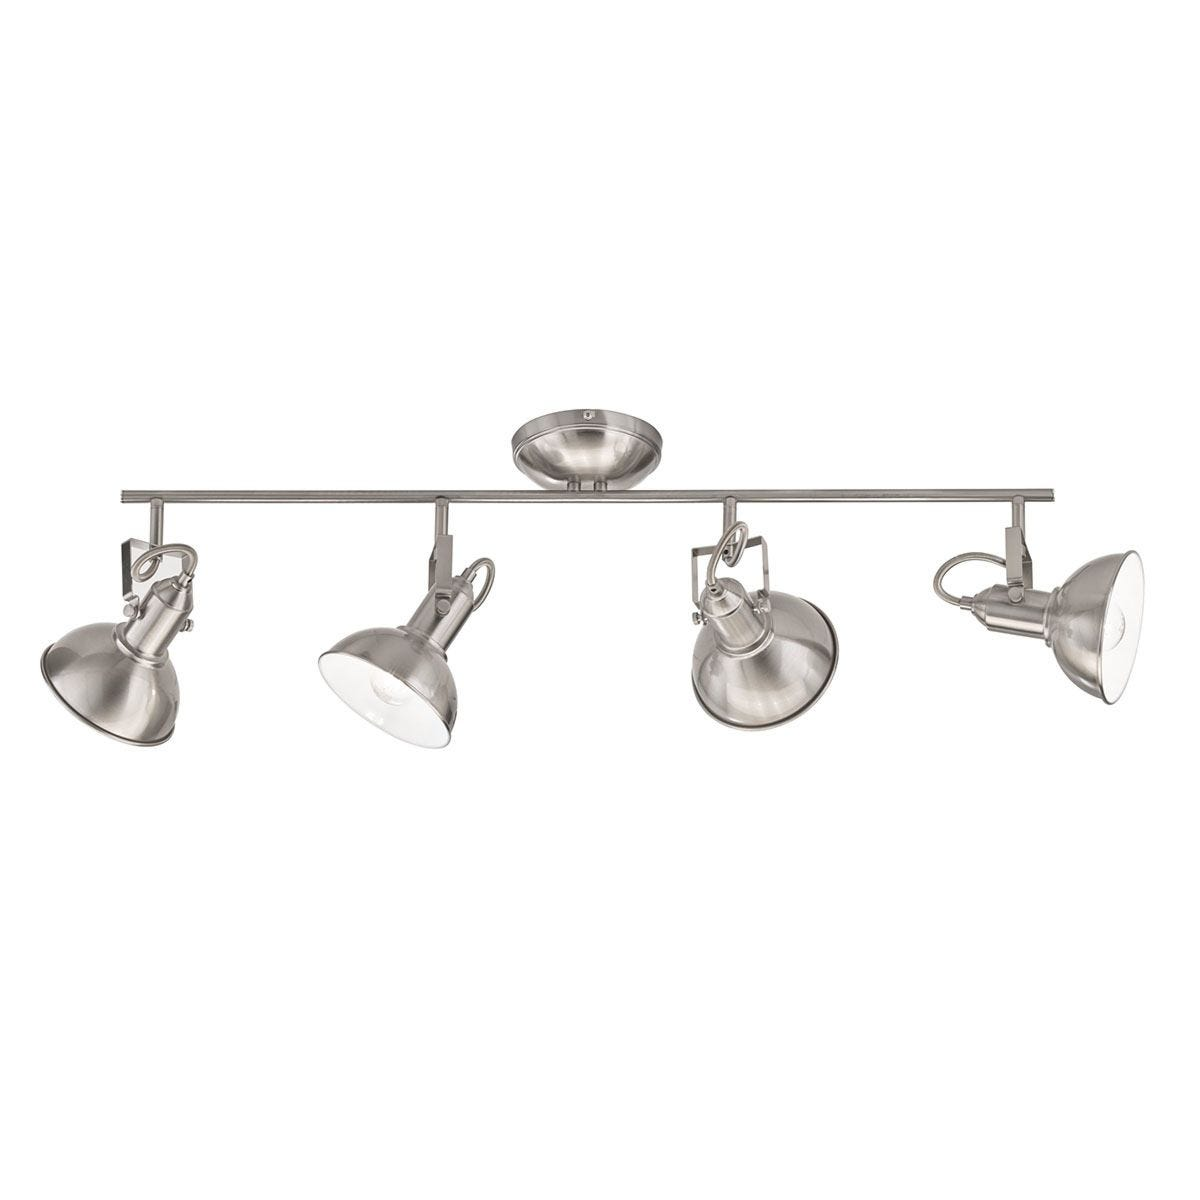 Wofi Scope Wall Lamp  4x E27 (25W) - Nickel Matt Finish